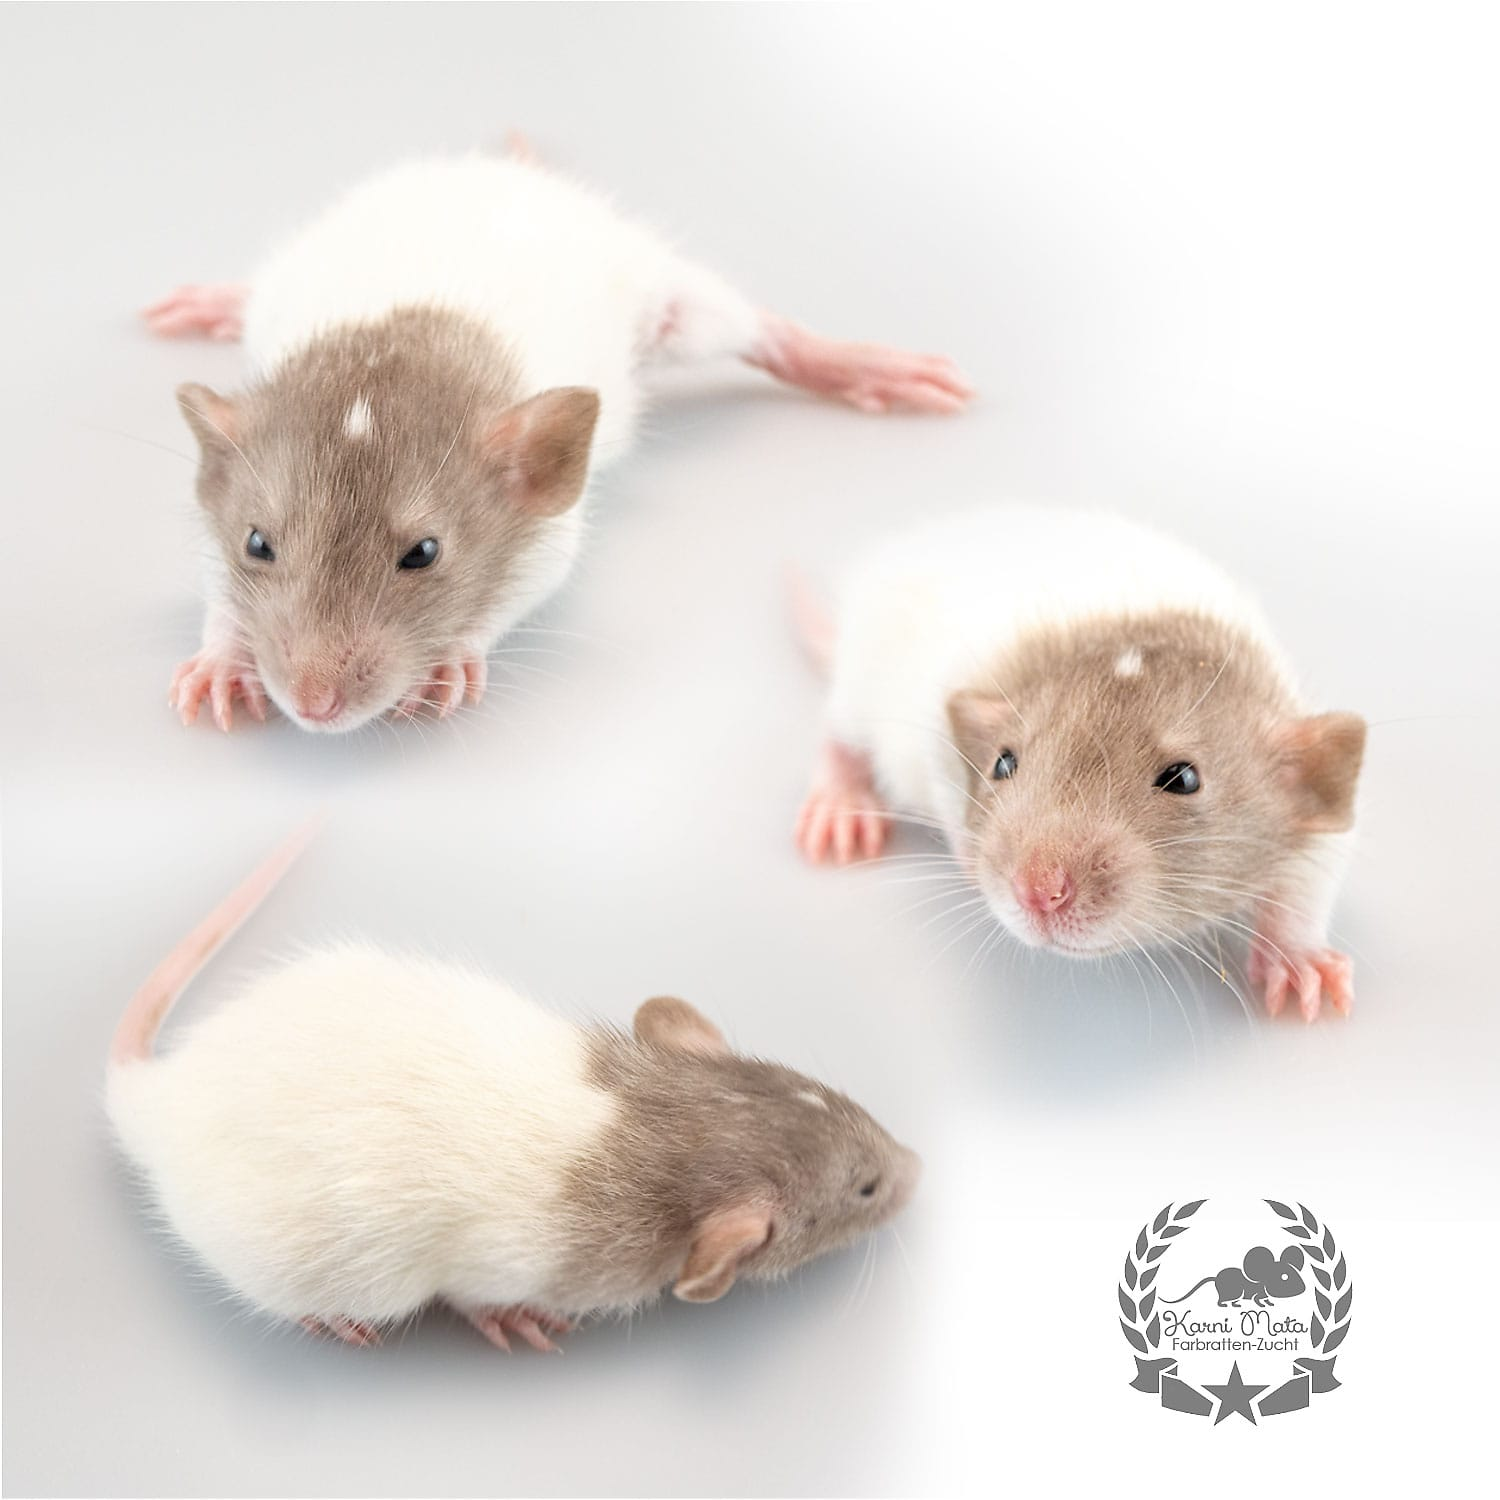 Jaskier, color rat / Fancyrat, Mink oder Dark Pearl Bareback Headspot